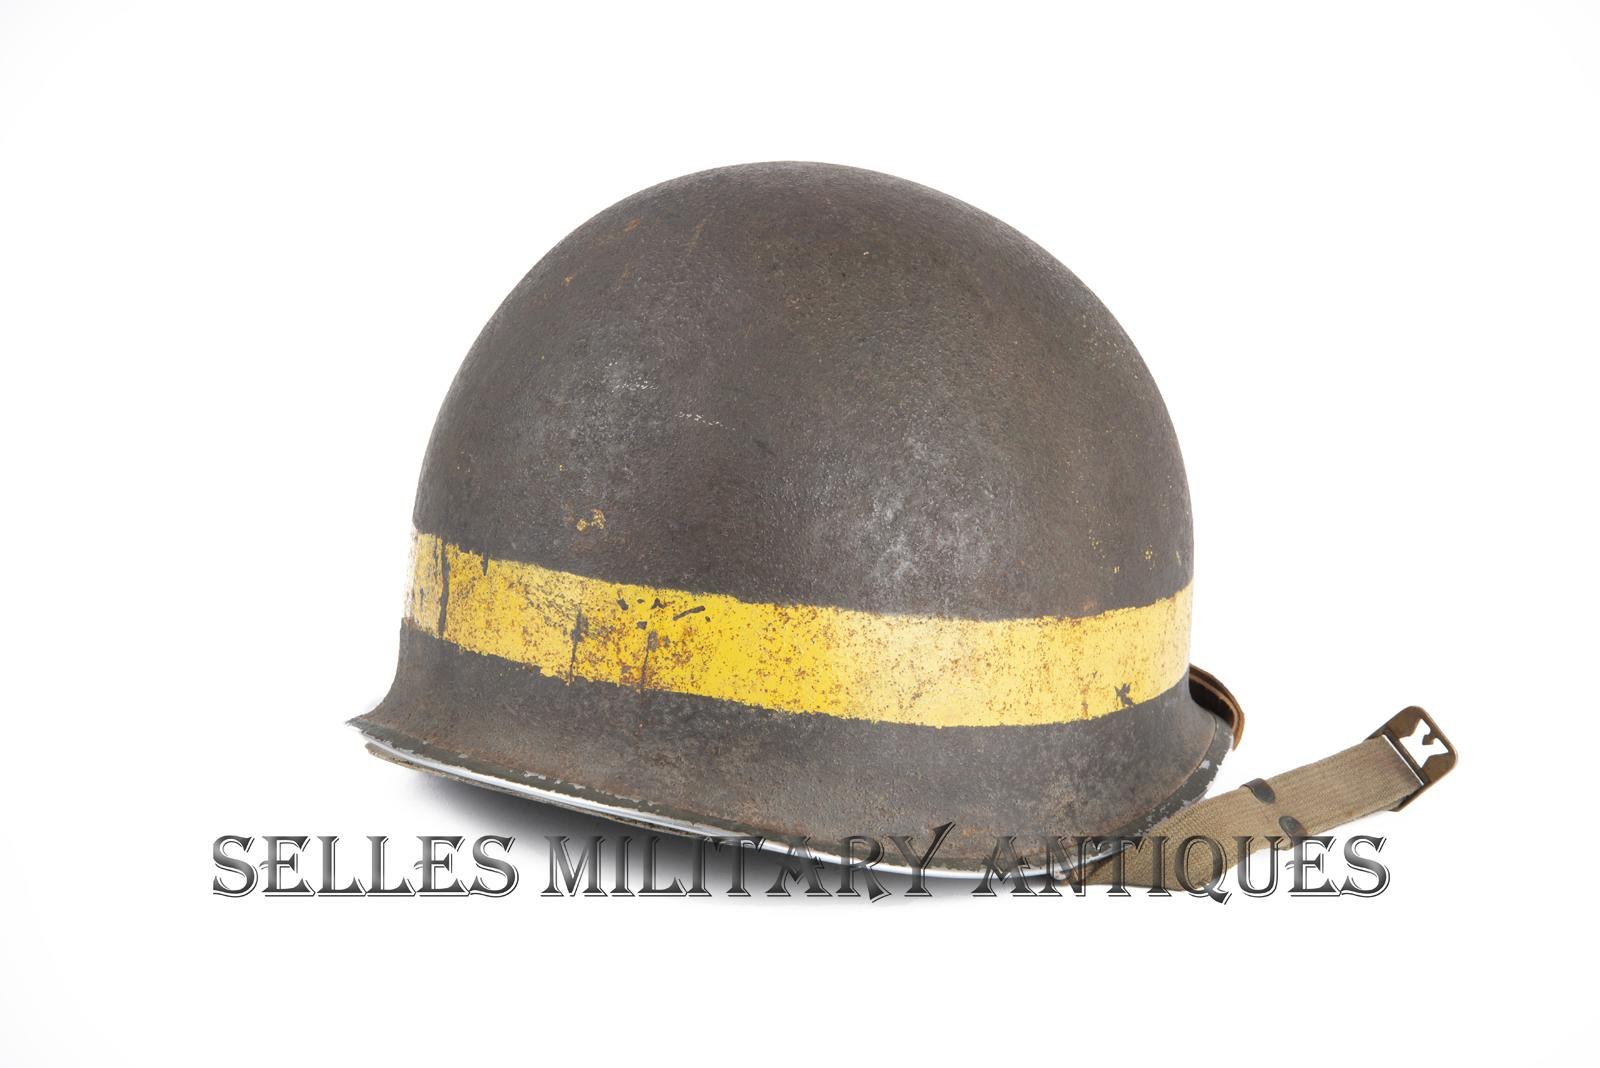 Casque M1 Military Police 2nd I.D. US (3)